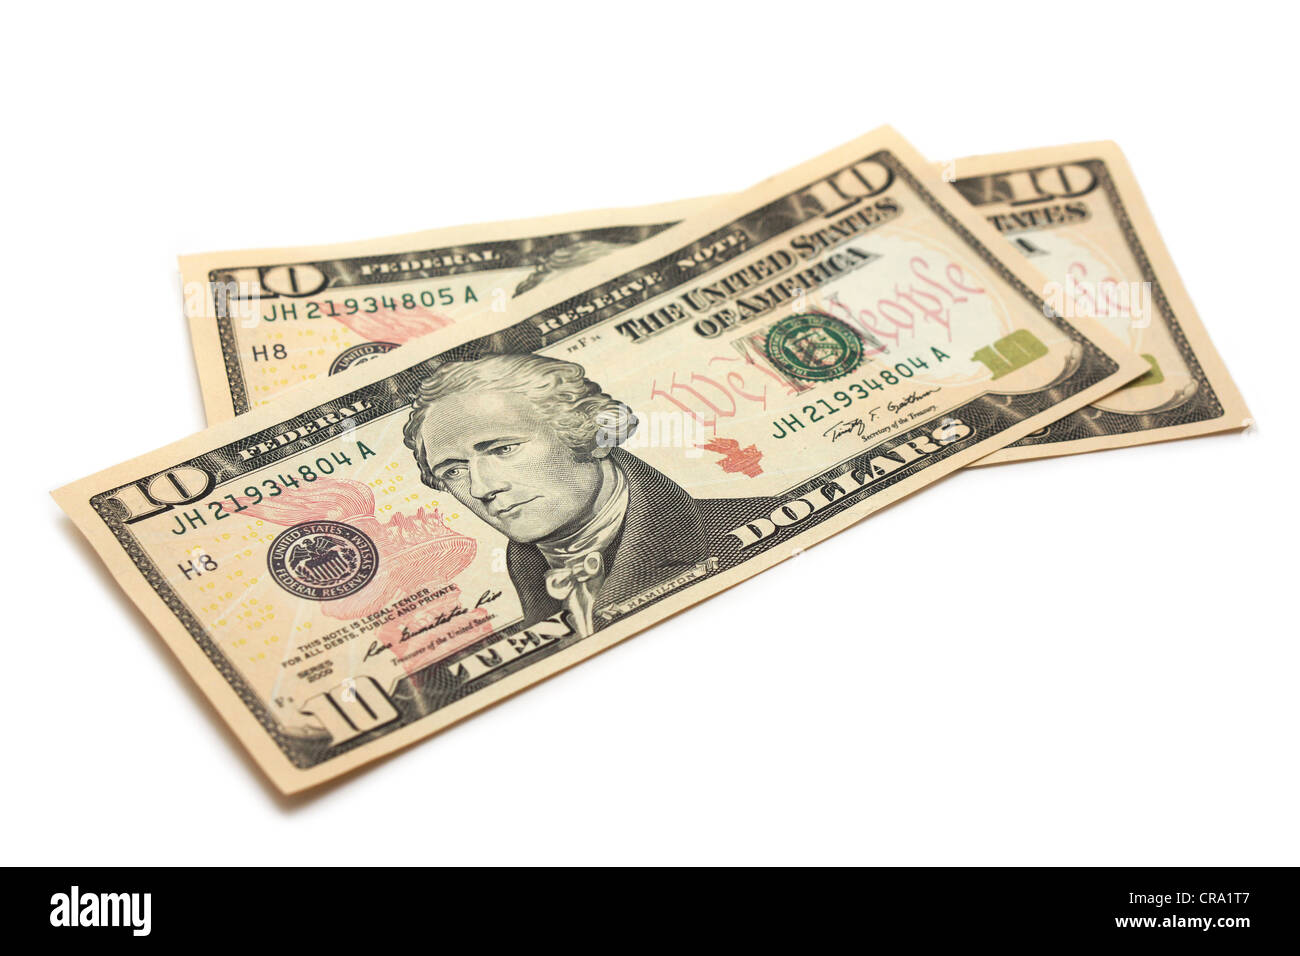 Dollar Bills, American Currency 10 Dollars - Stock Image